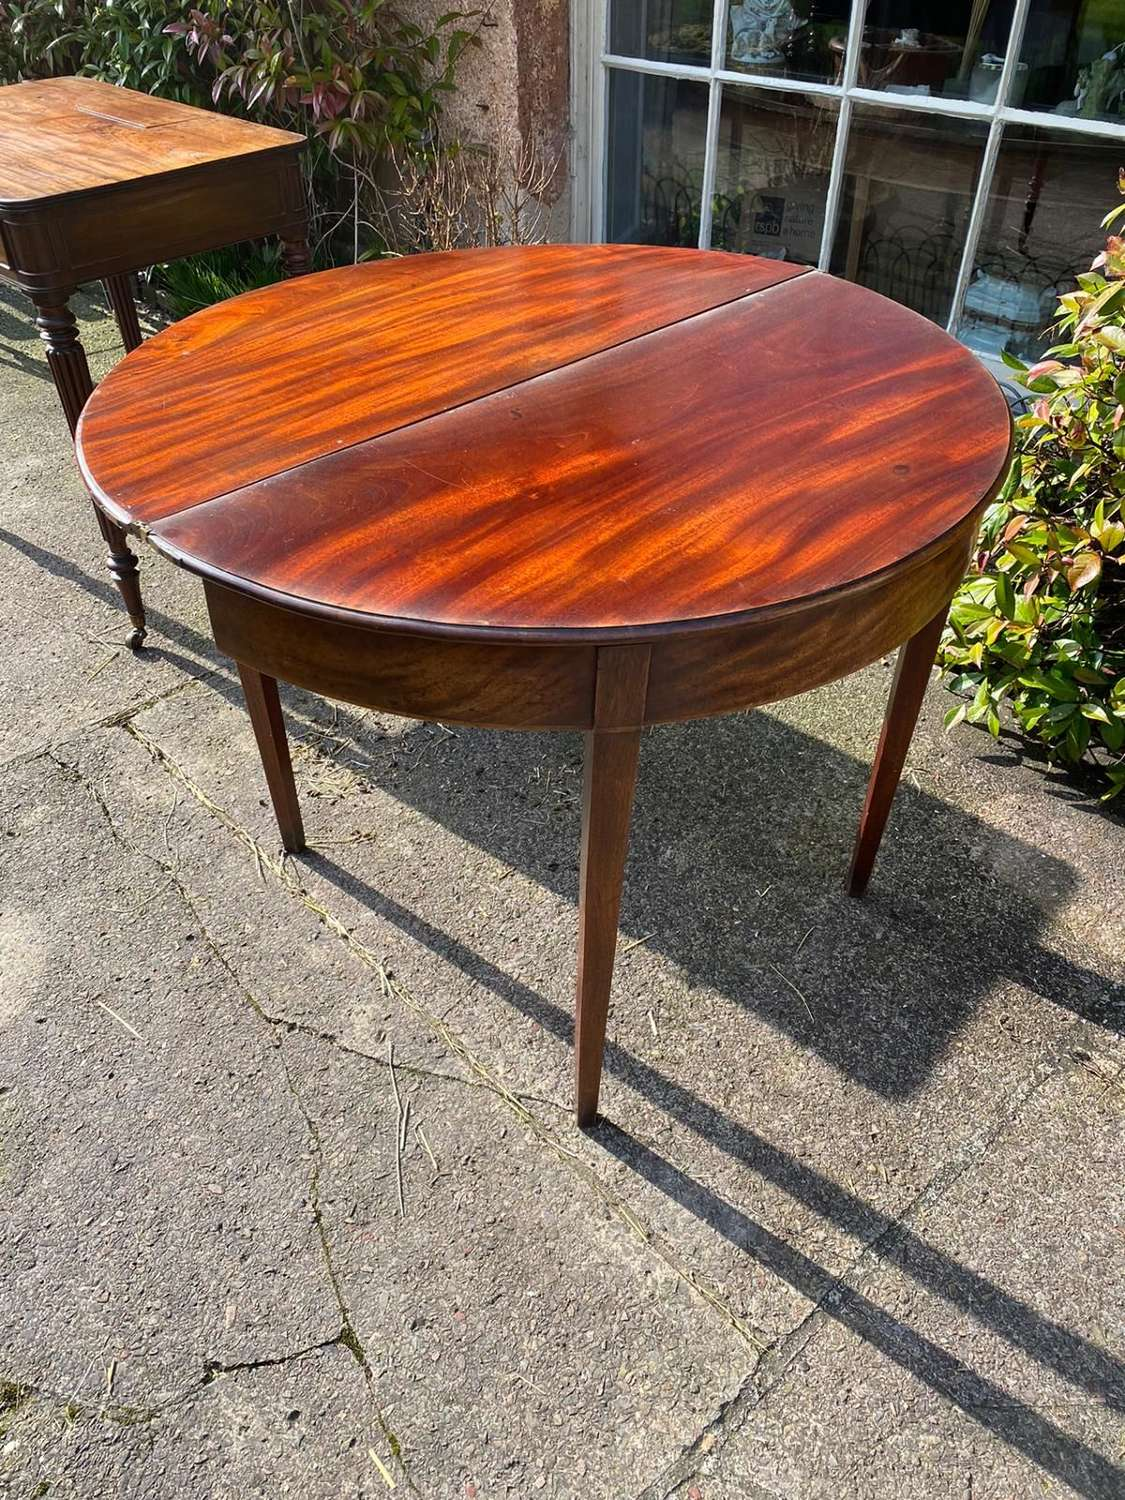 George the third mahogany Demilune tea table